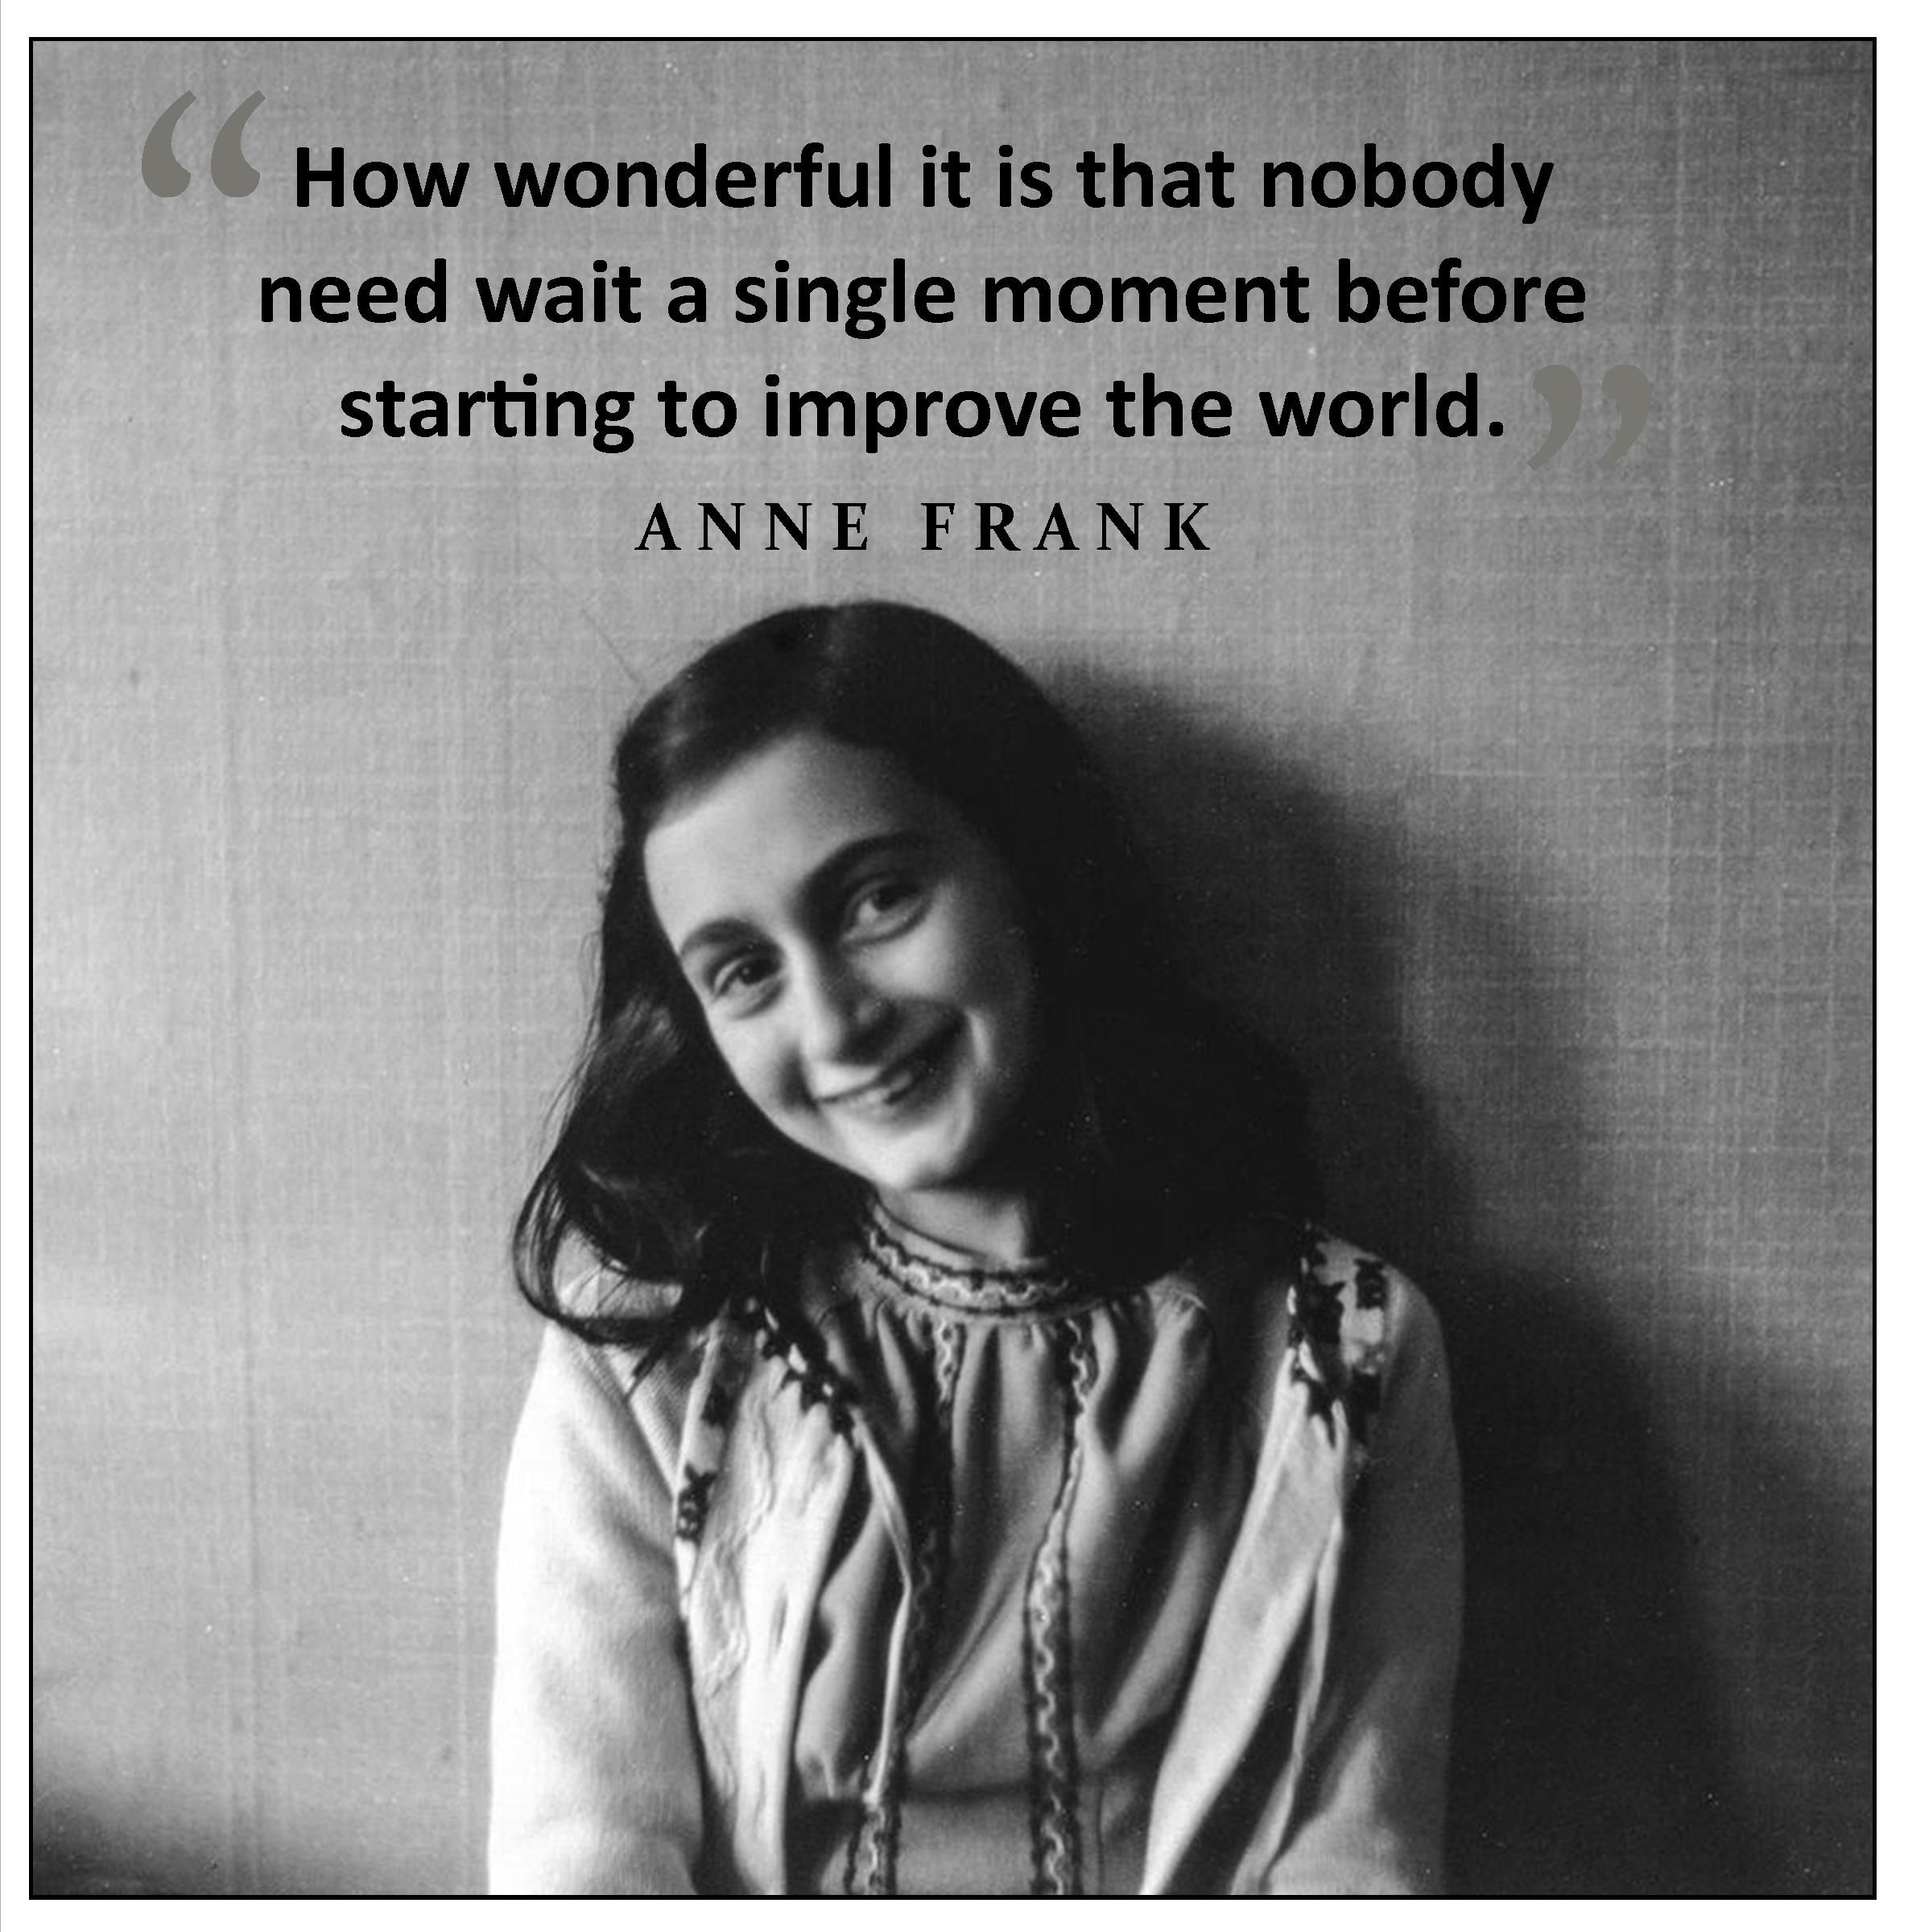 Anne Frank Quote Quote Of The Century I D Say And From Someone So